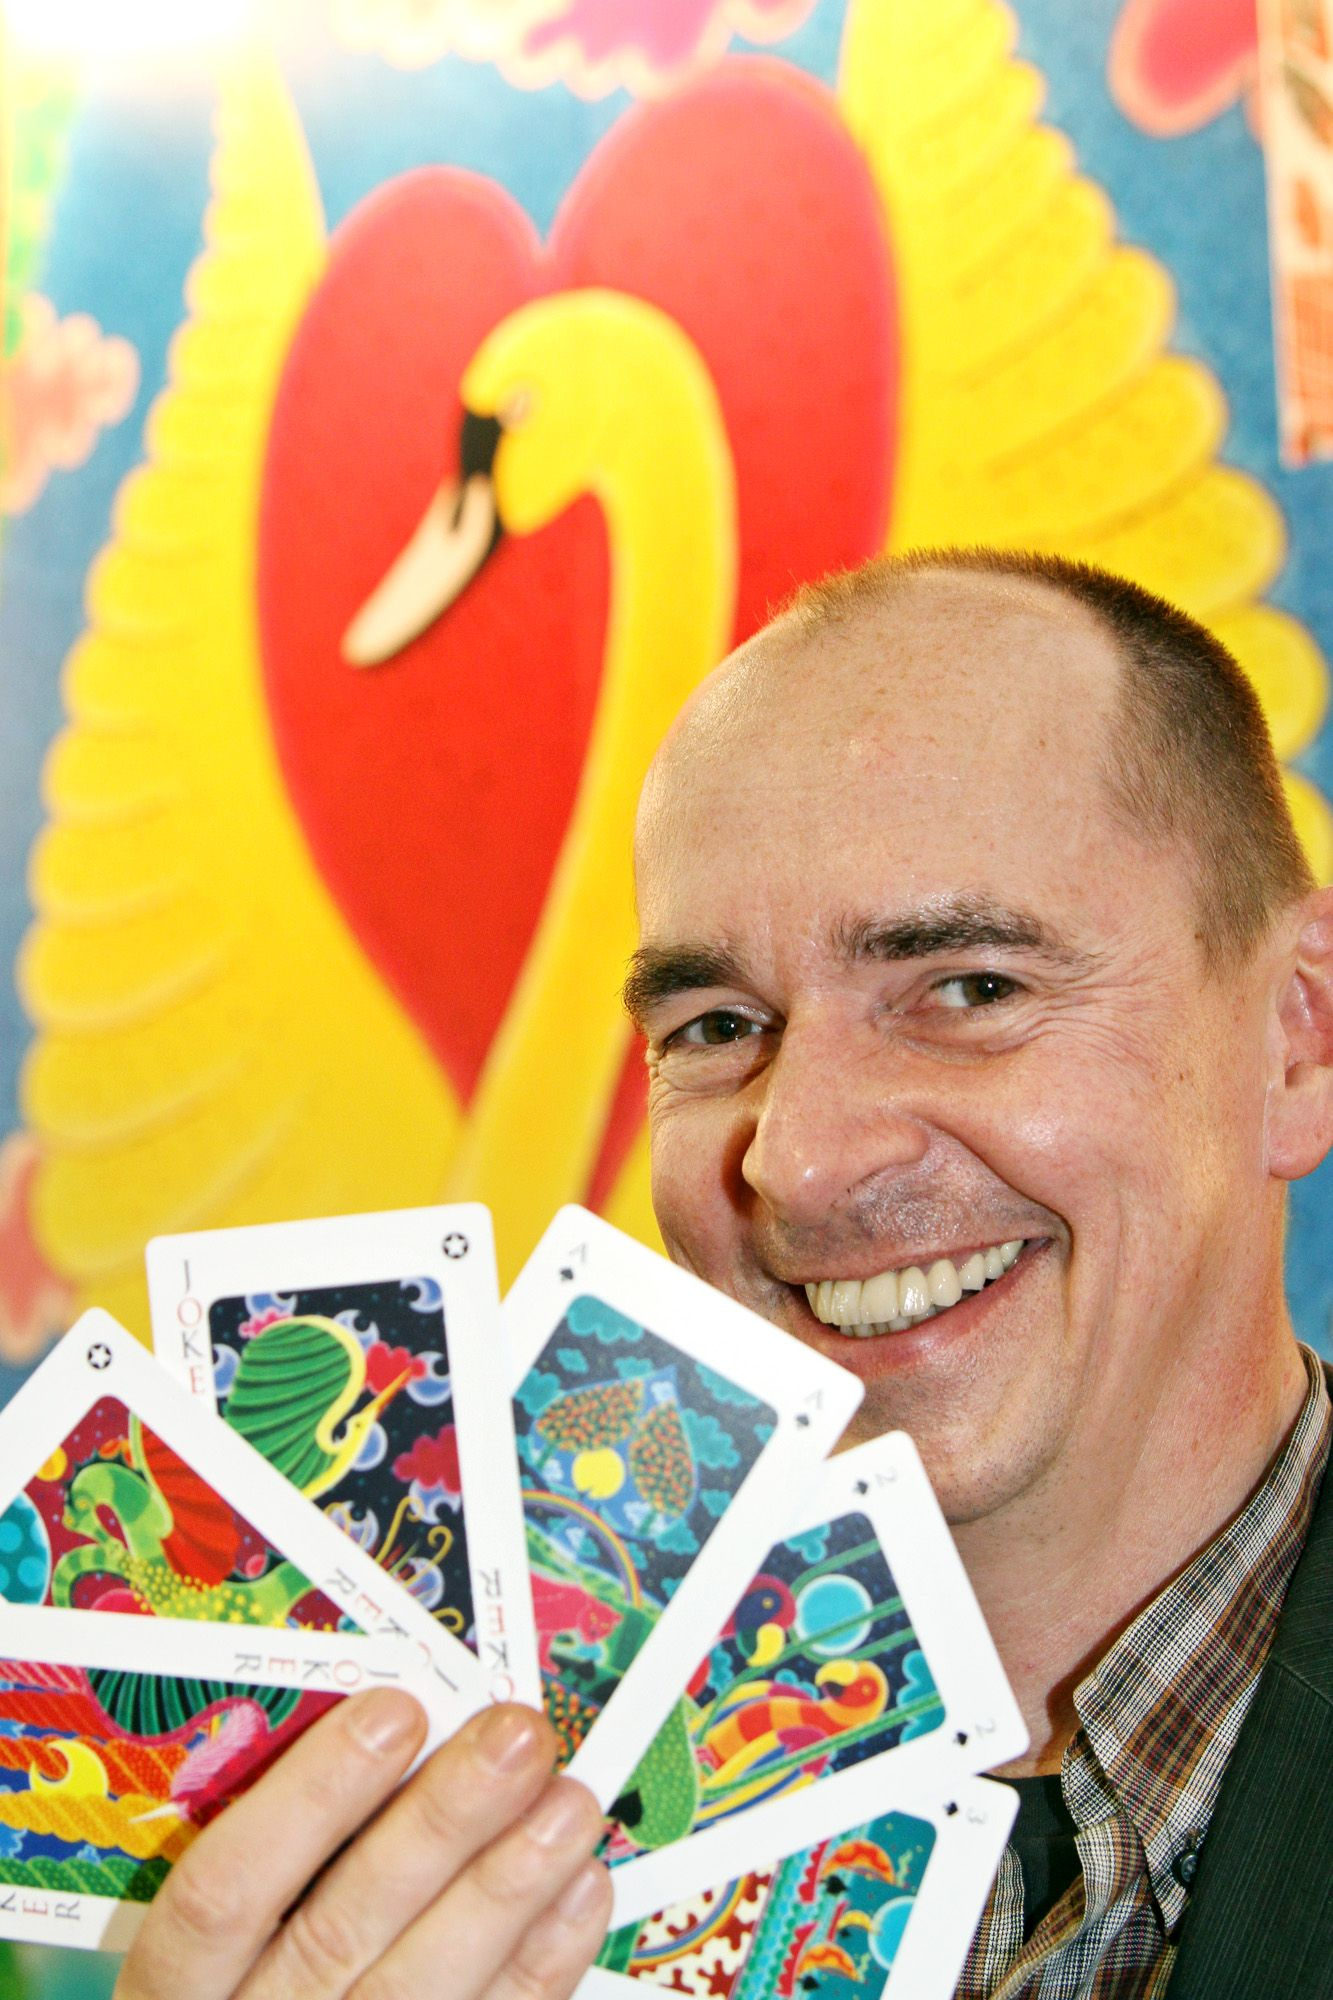 Artist Atelier Wolfgang Nocke displays cards which comes with his new book 'Fabelspiel' during an interview on Thursday.